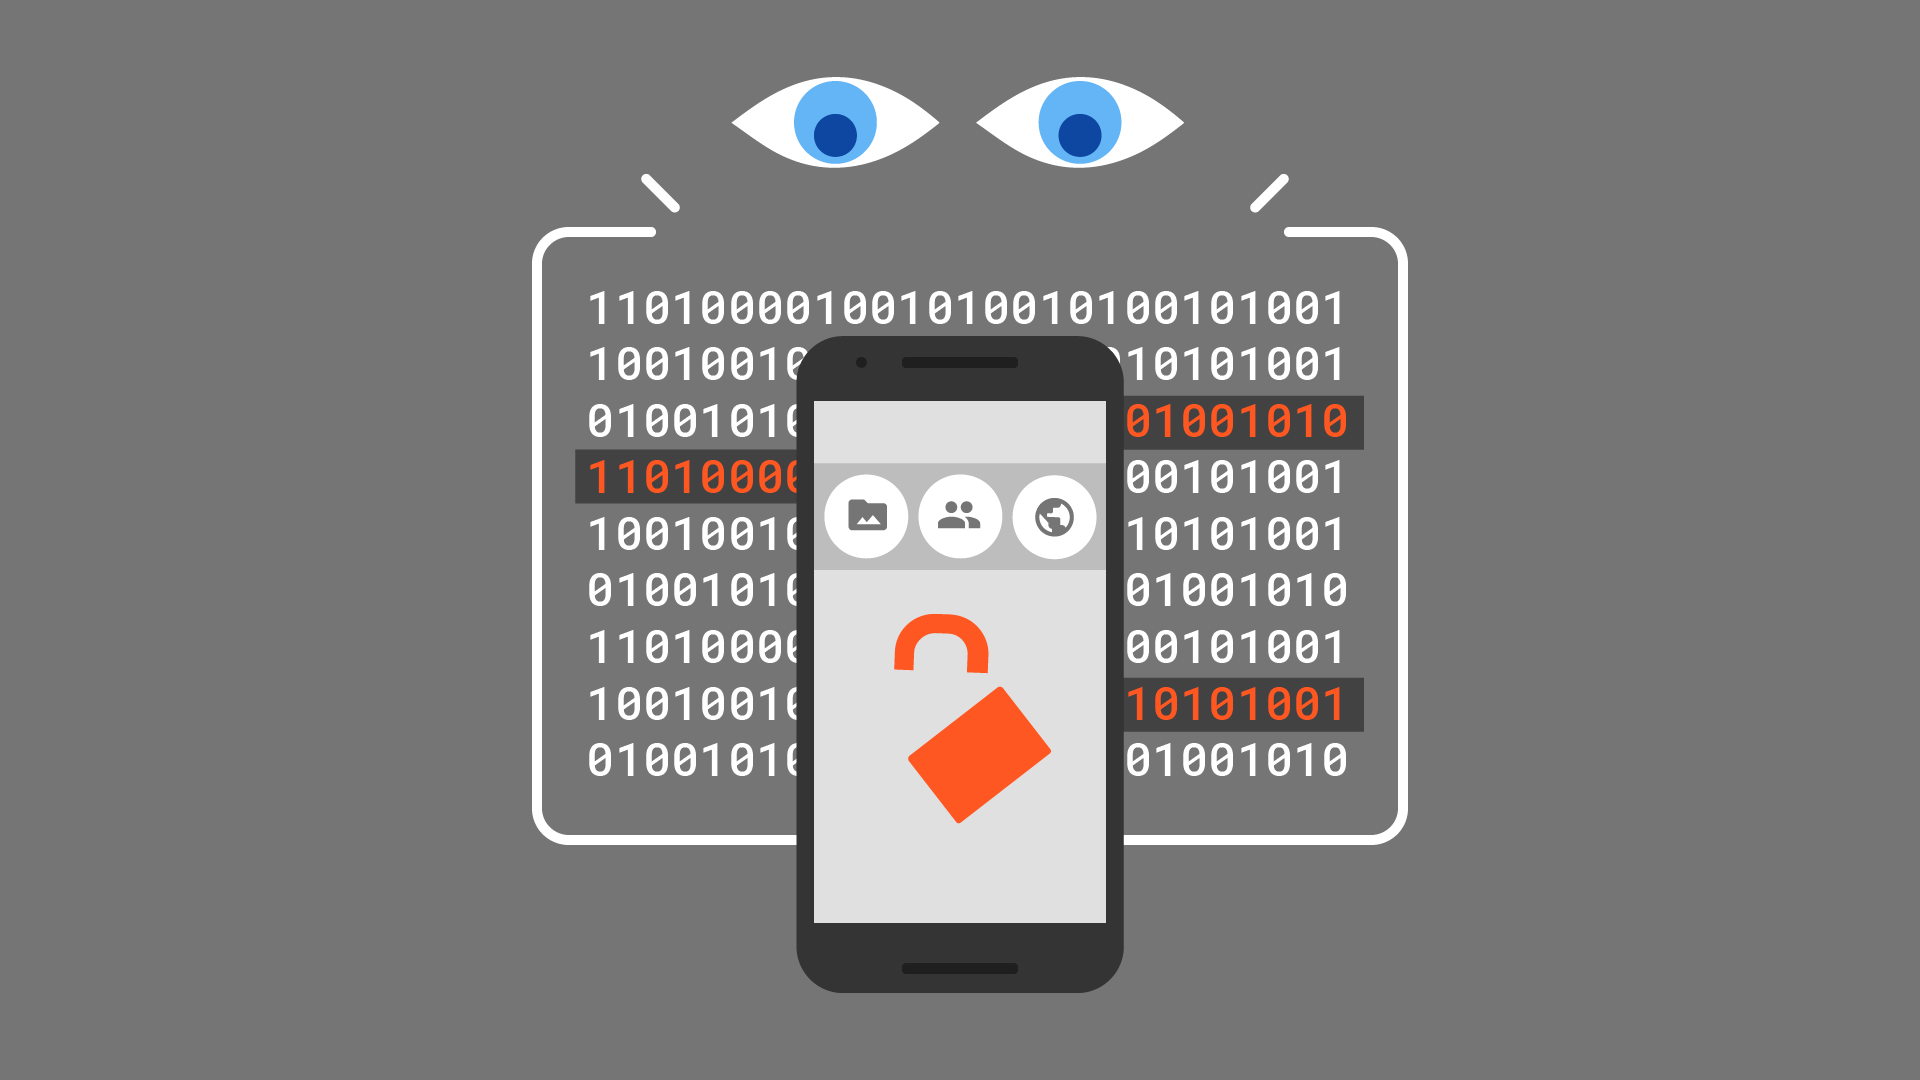 Illustration of mobile security